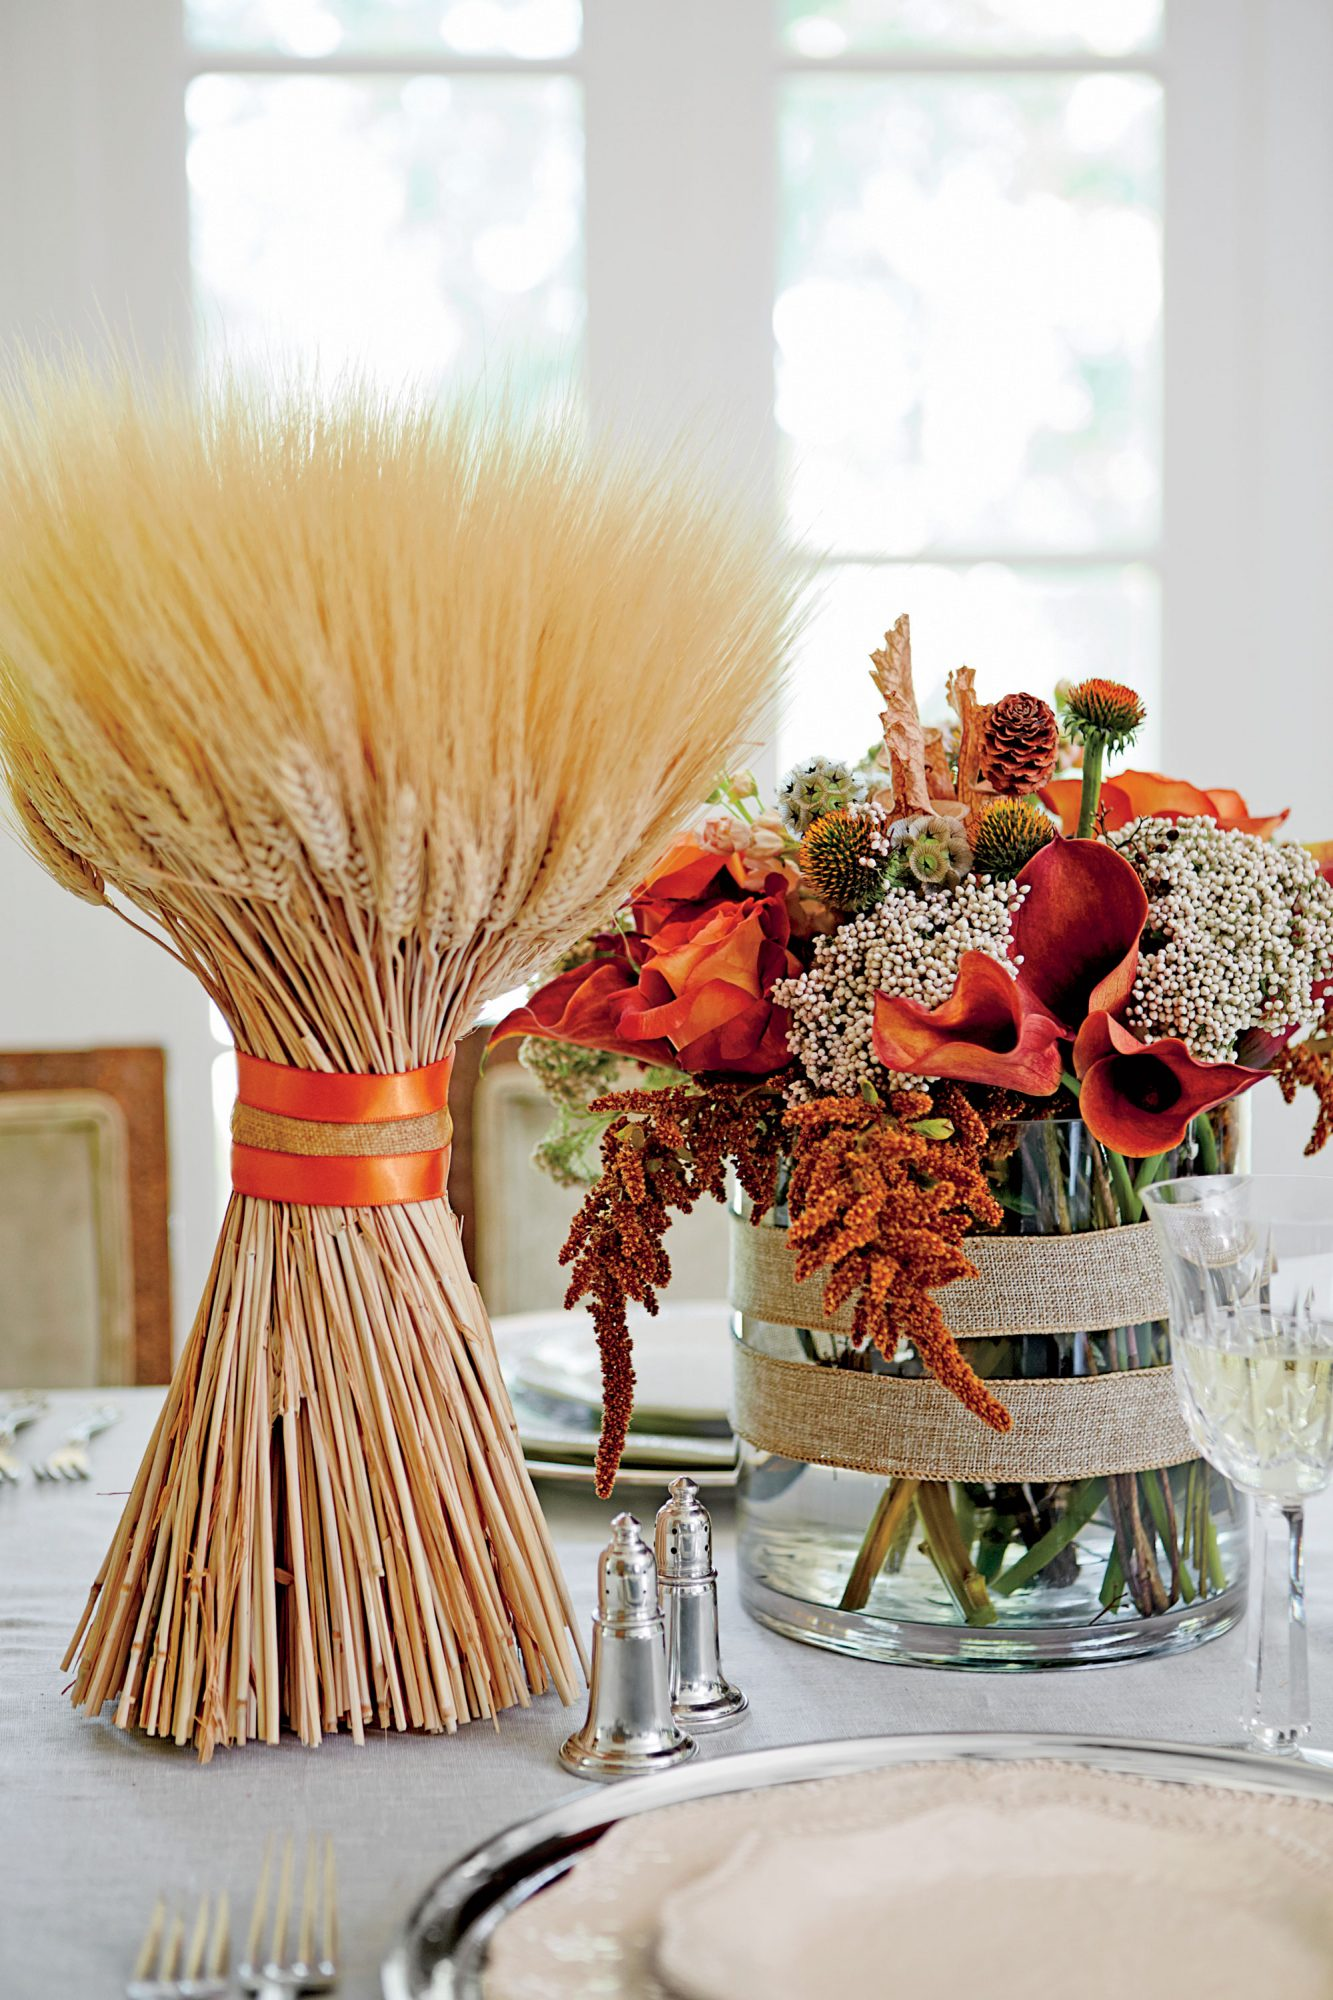 Warm and Natural Centerpiece